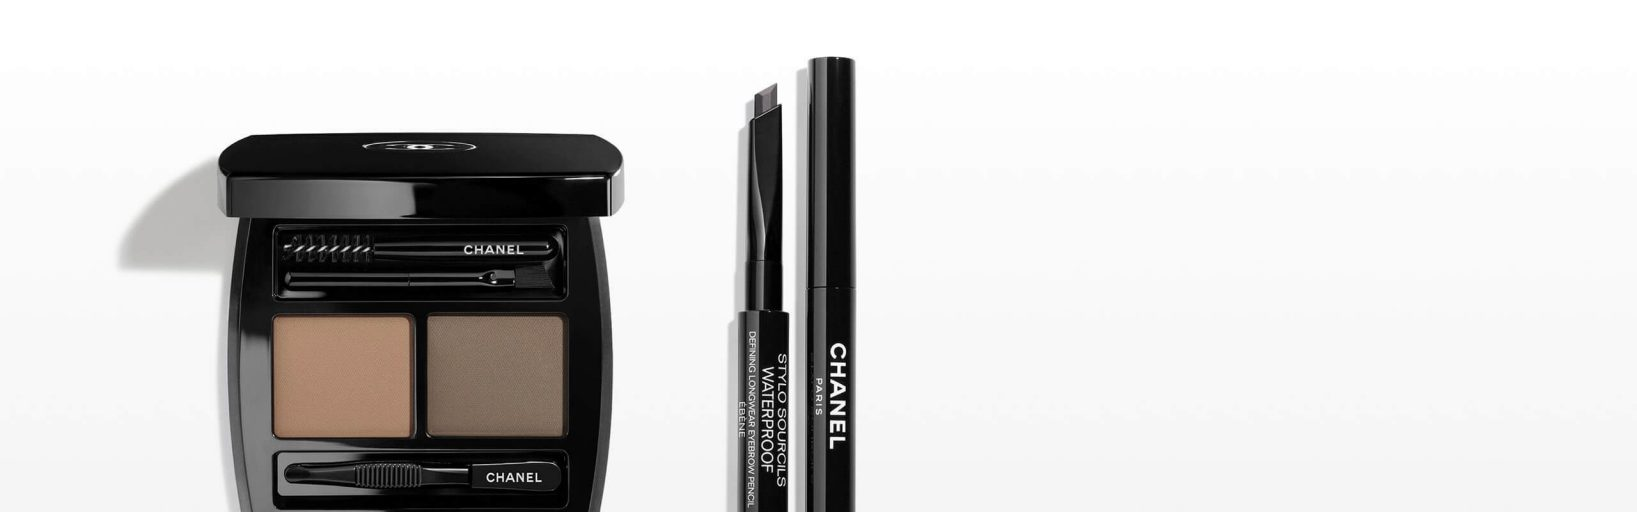 Brows - CHANEL